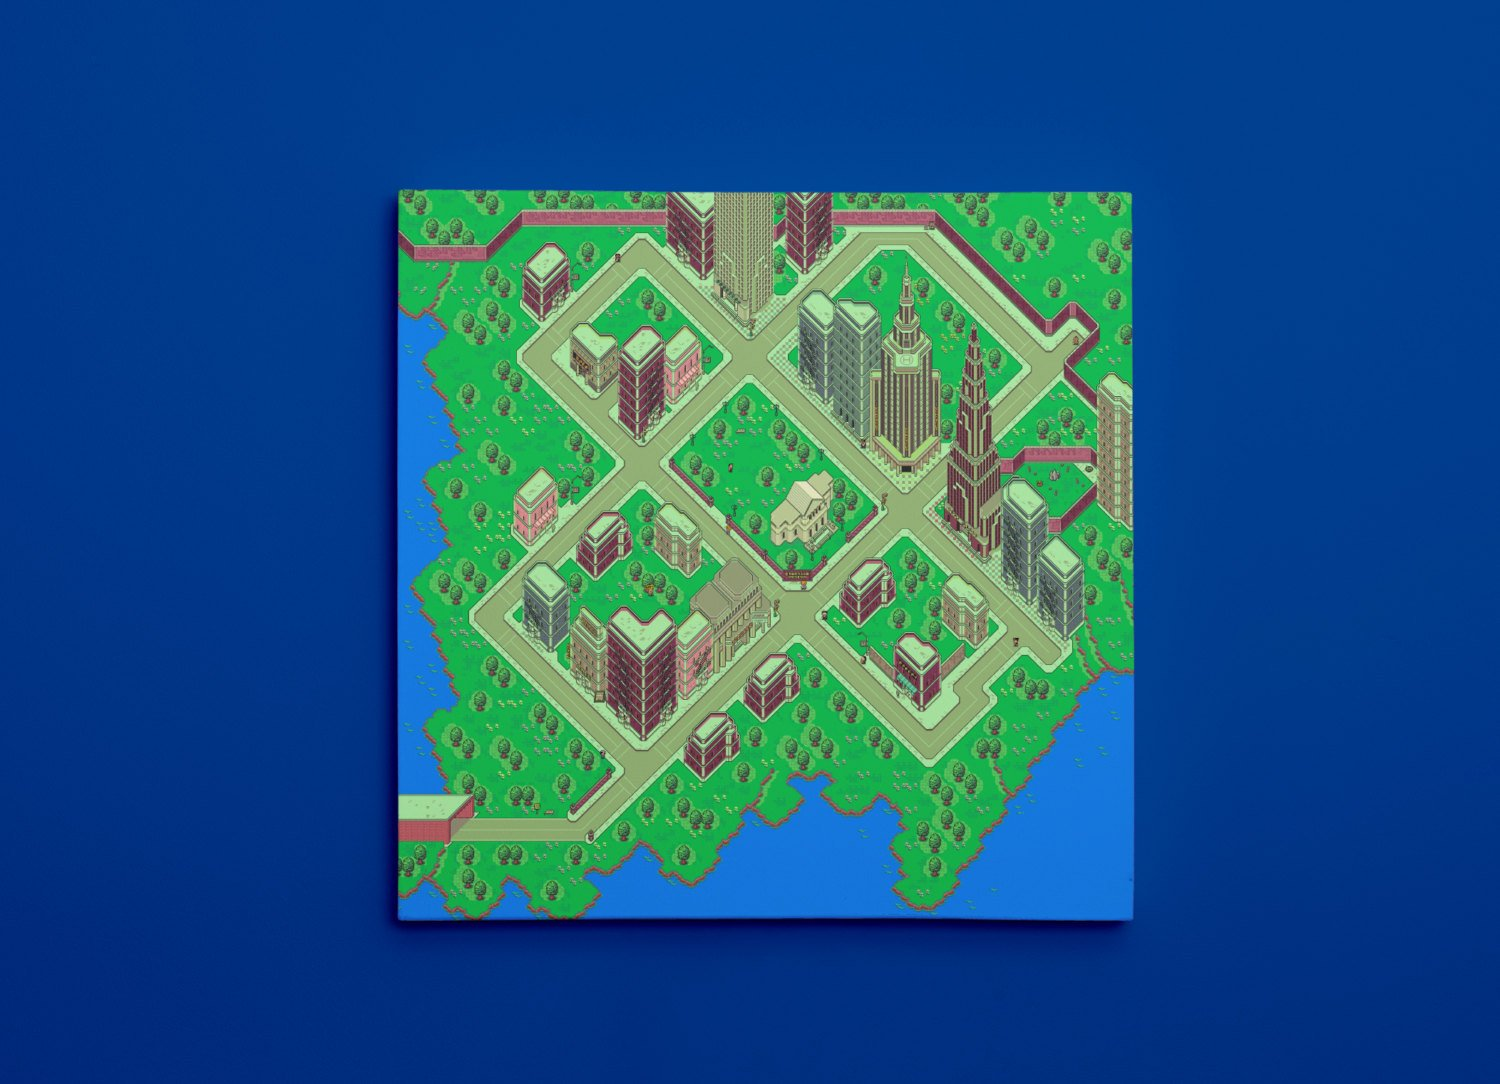 "EarthBound, Fourside Map (24"" x 24"") - Canvas Wrap Print"